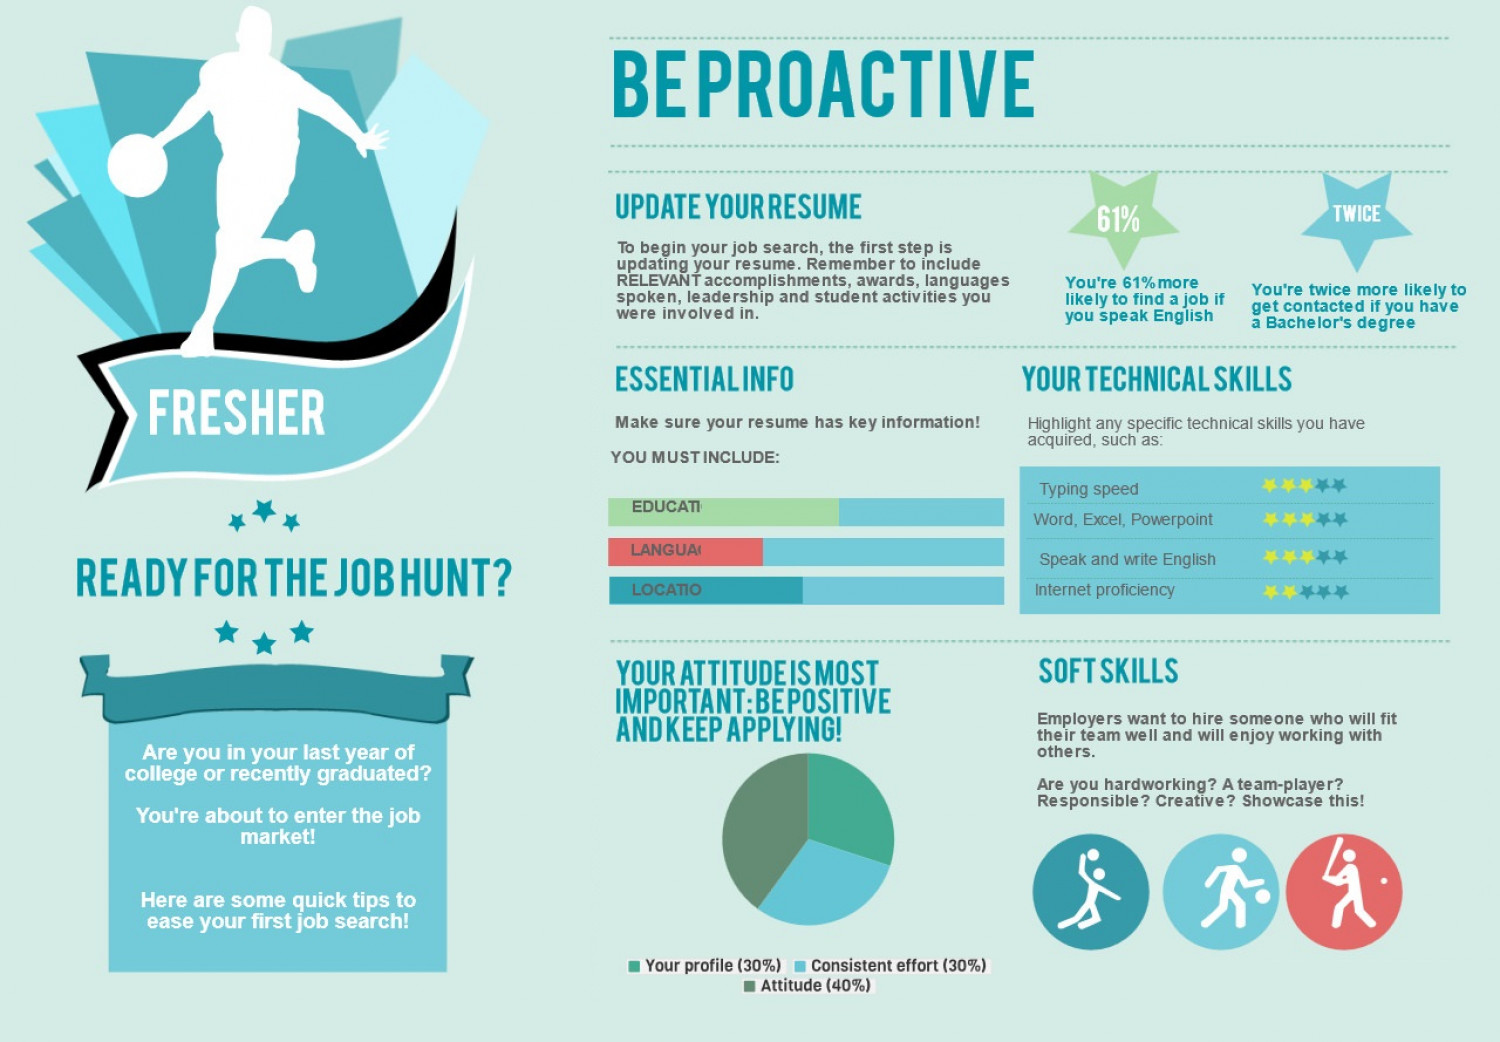 Get Your Dream Job by Being Proactive Infographic